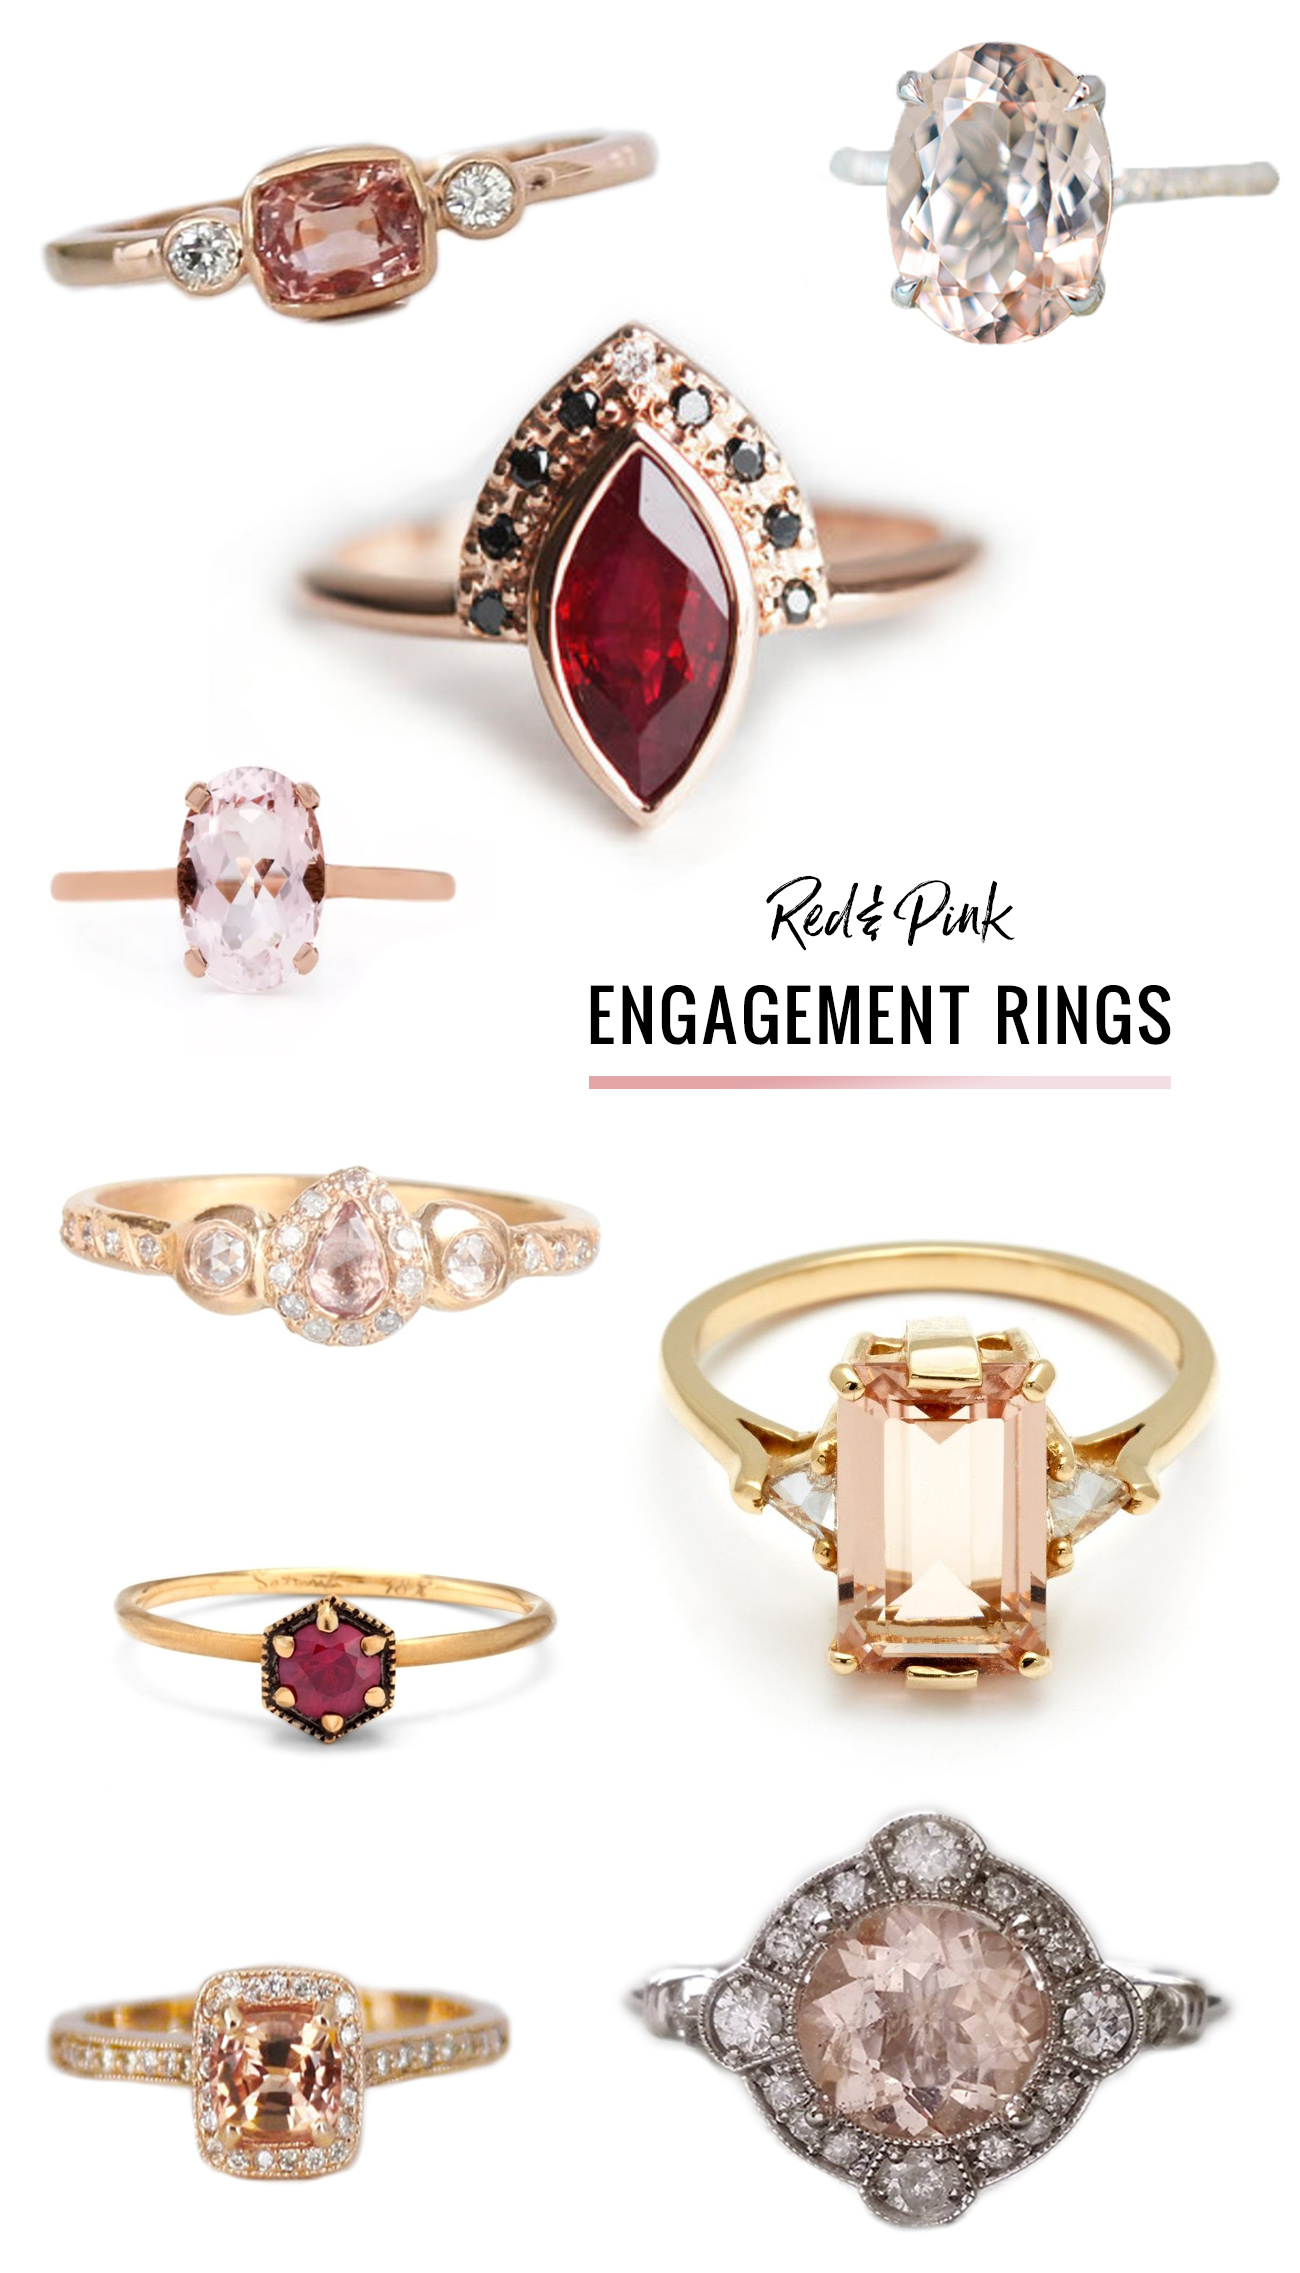 http://greenweddingshoes.com/wp-content/uploads/2017/05/red_pink_engagement_rings.jpg Unique